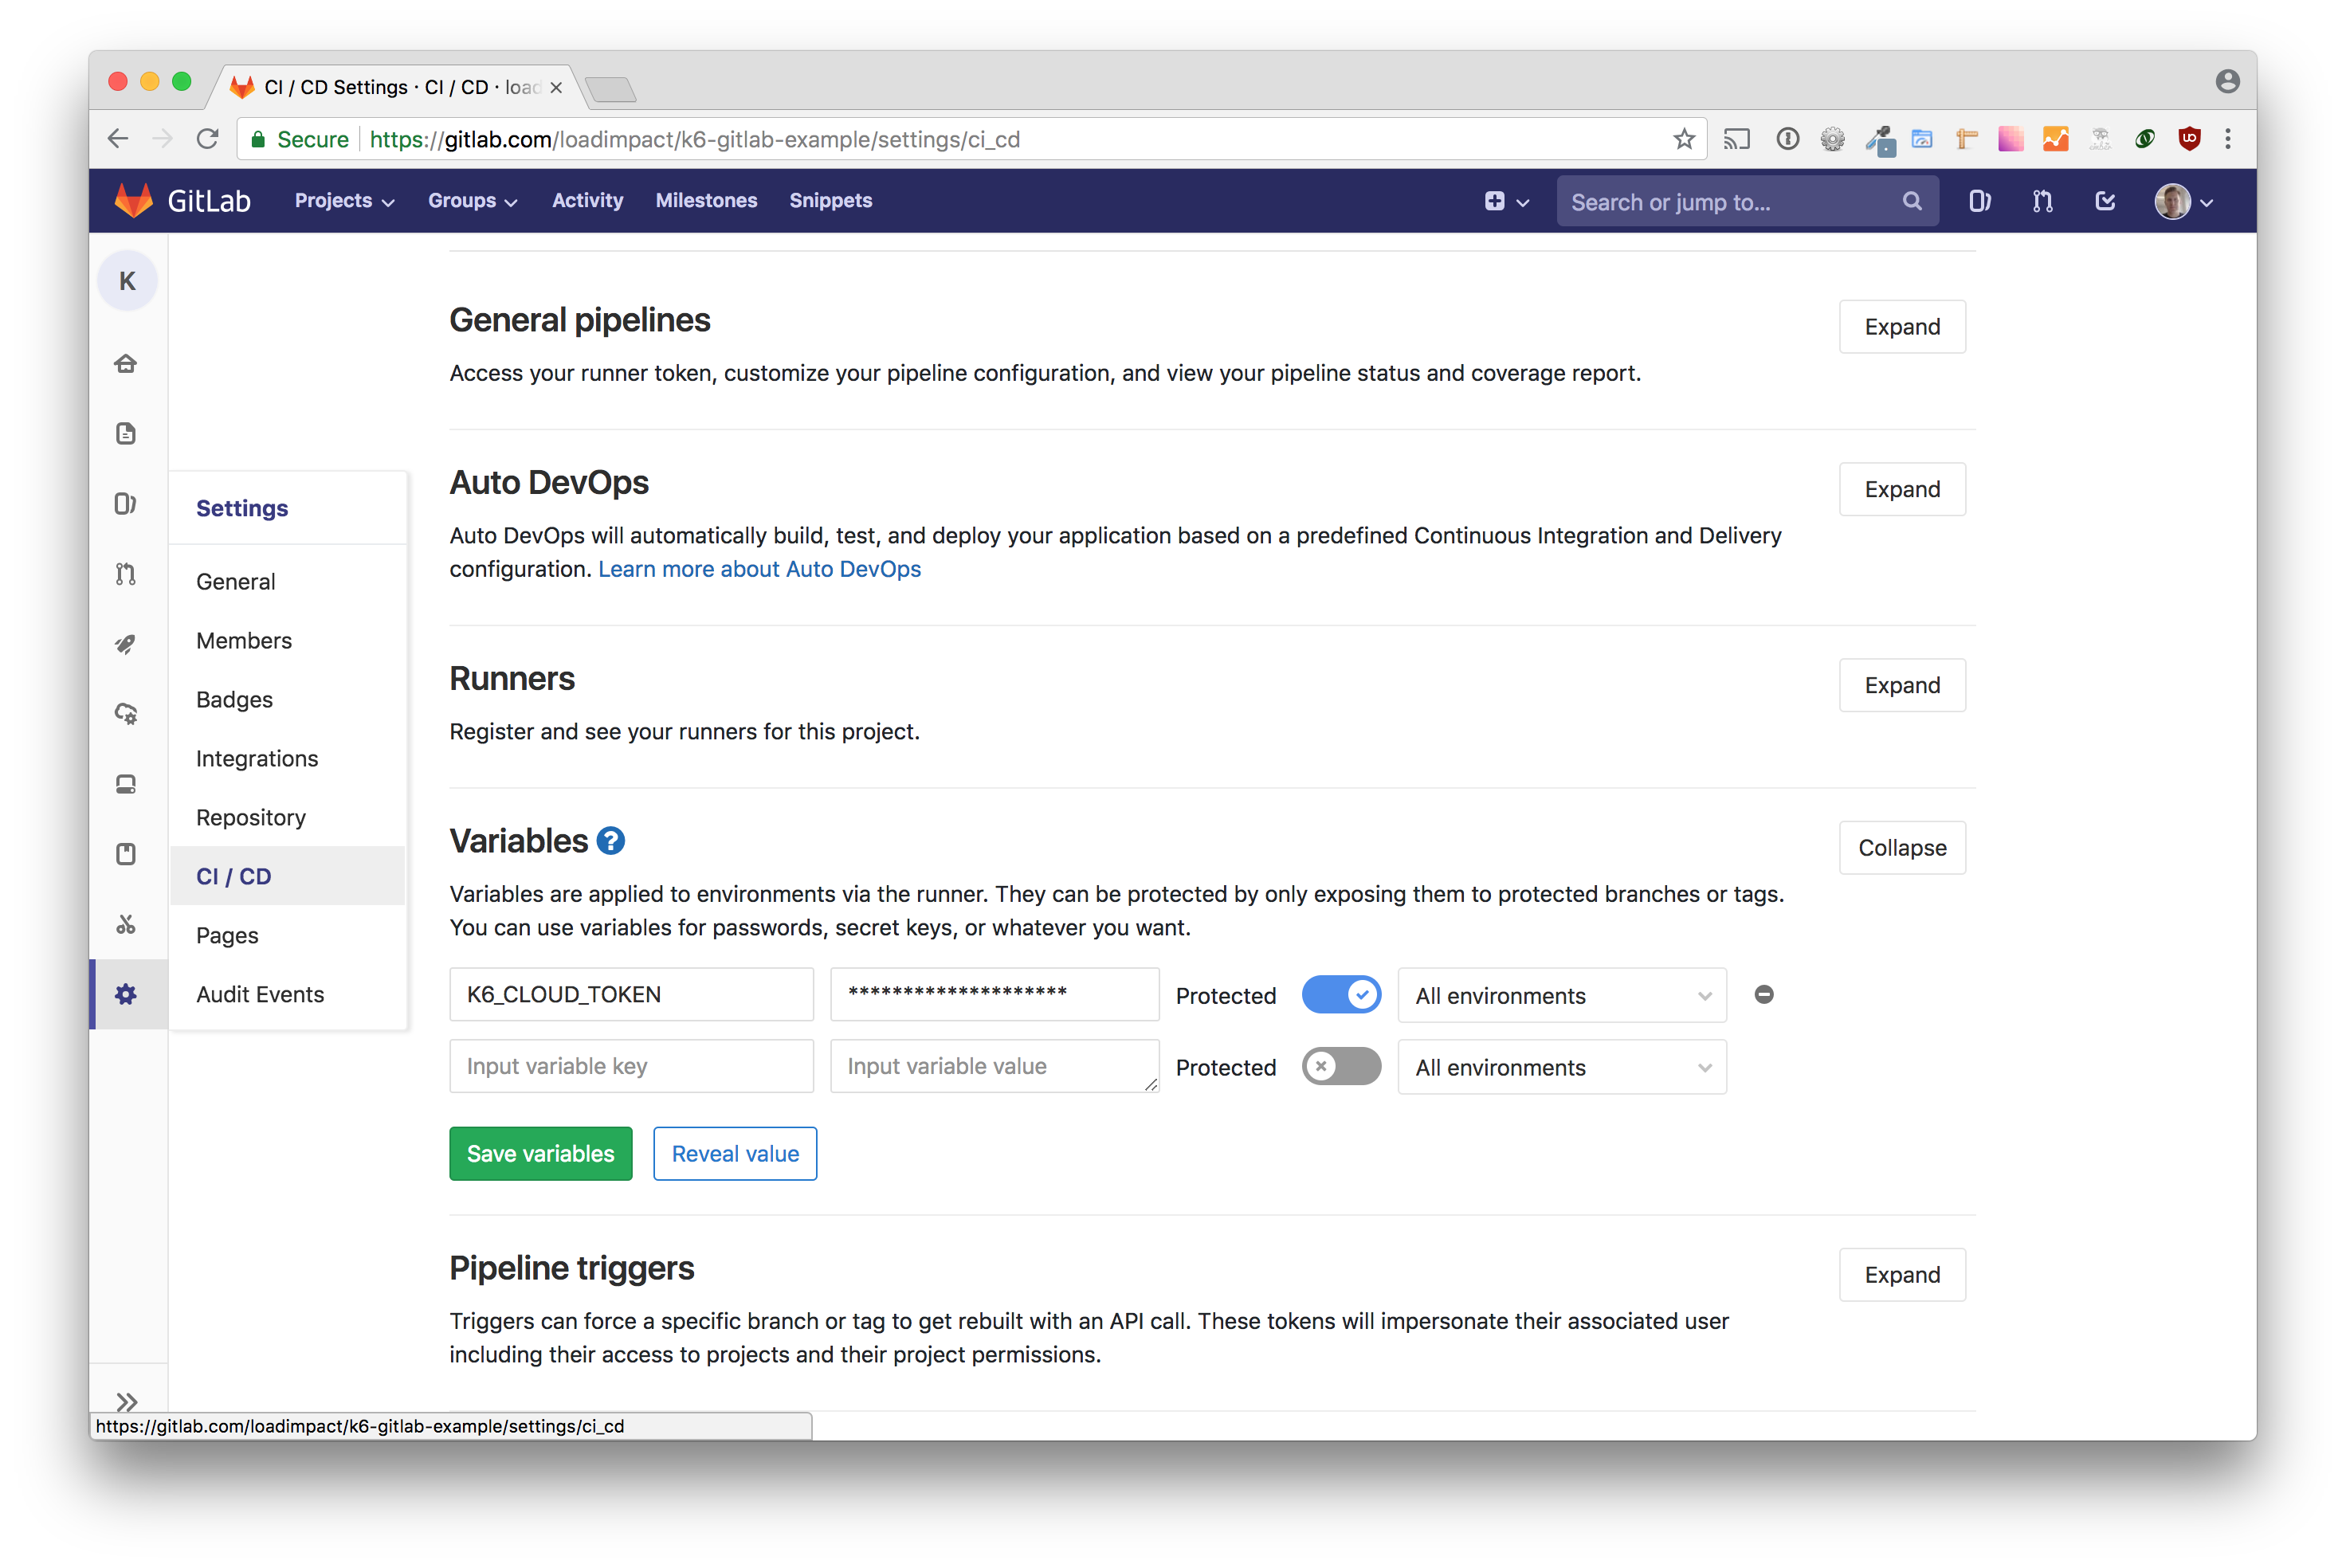 Performance Testing with Gitlab | Load Impact